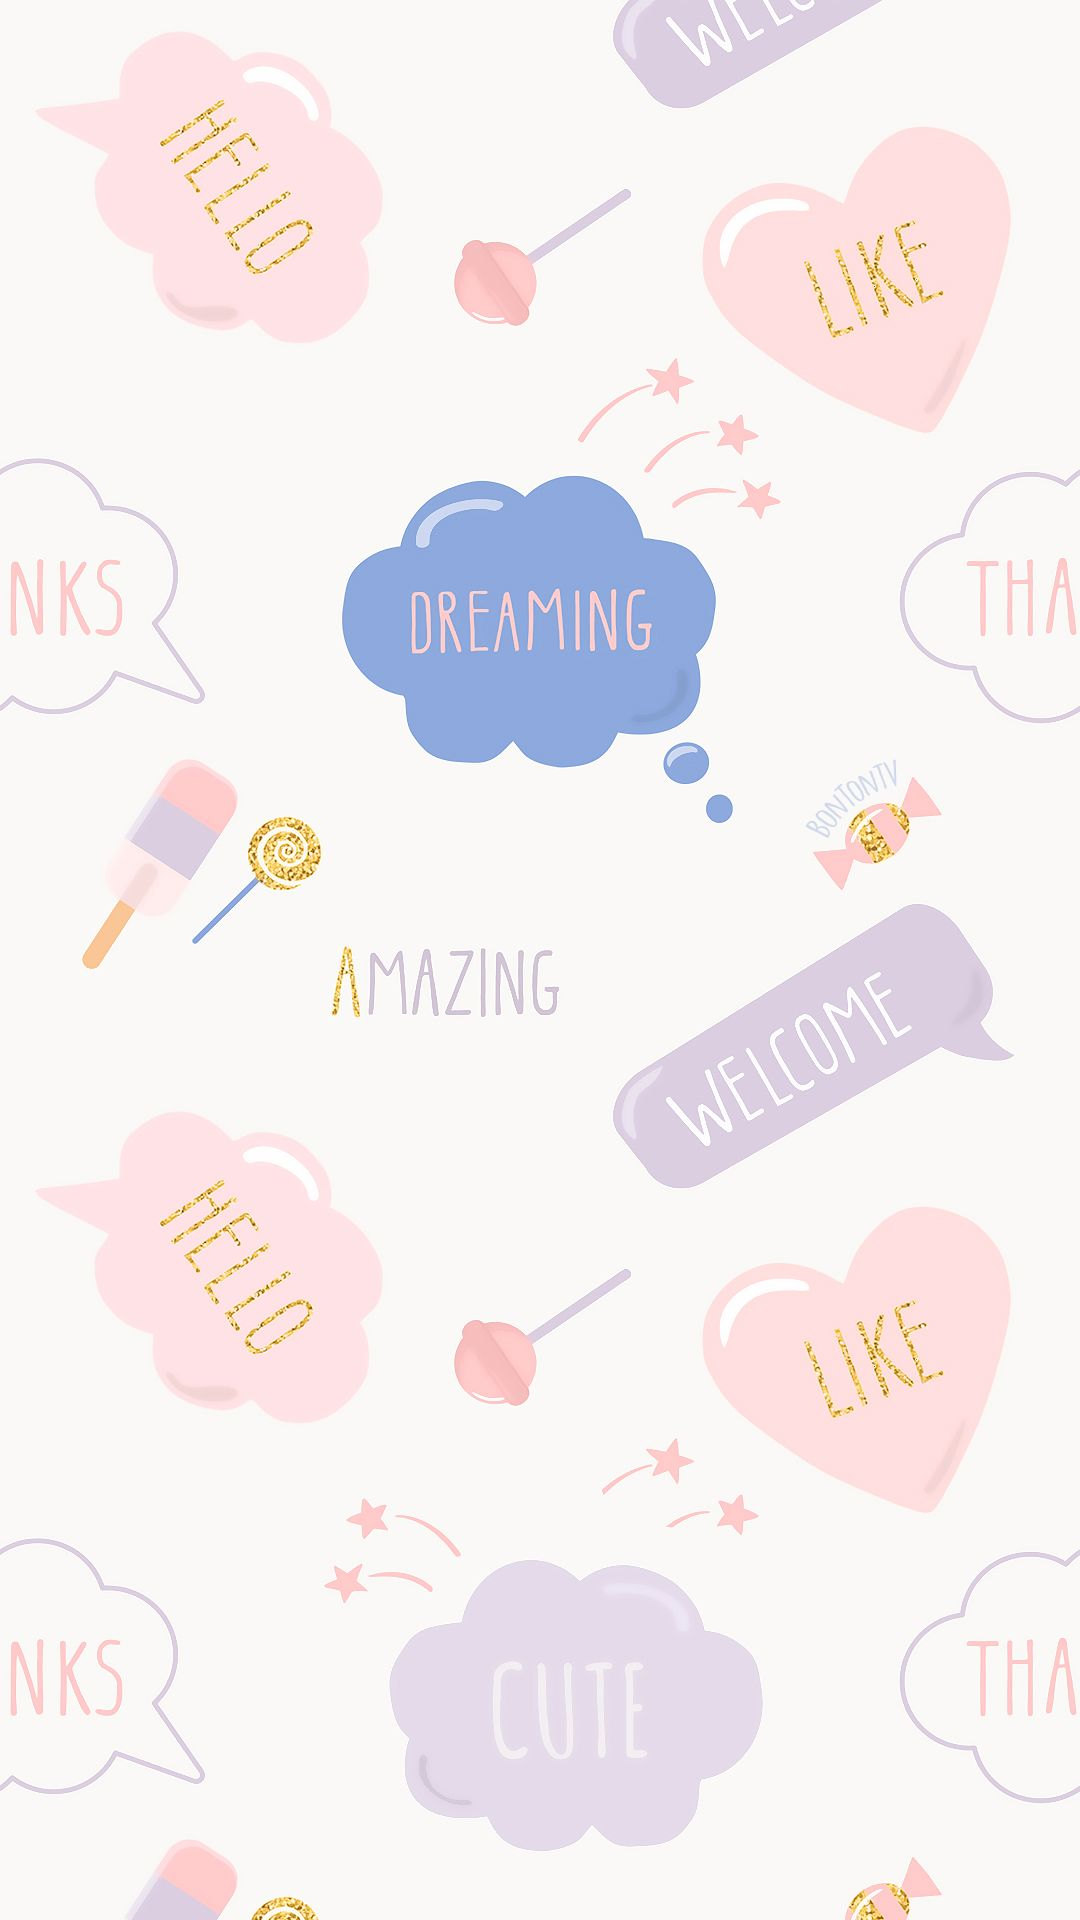 Phone Wallpapers Hd Cute Pastel Text By Bonton Tv Free